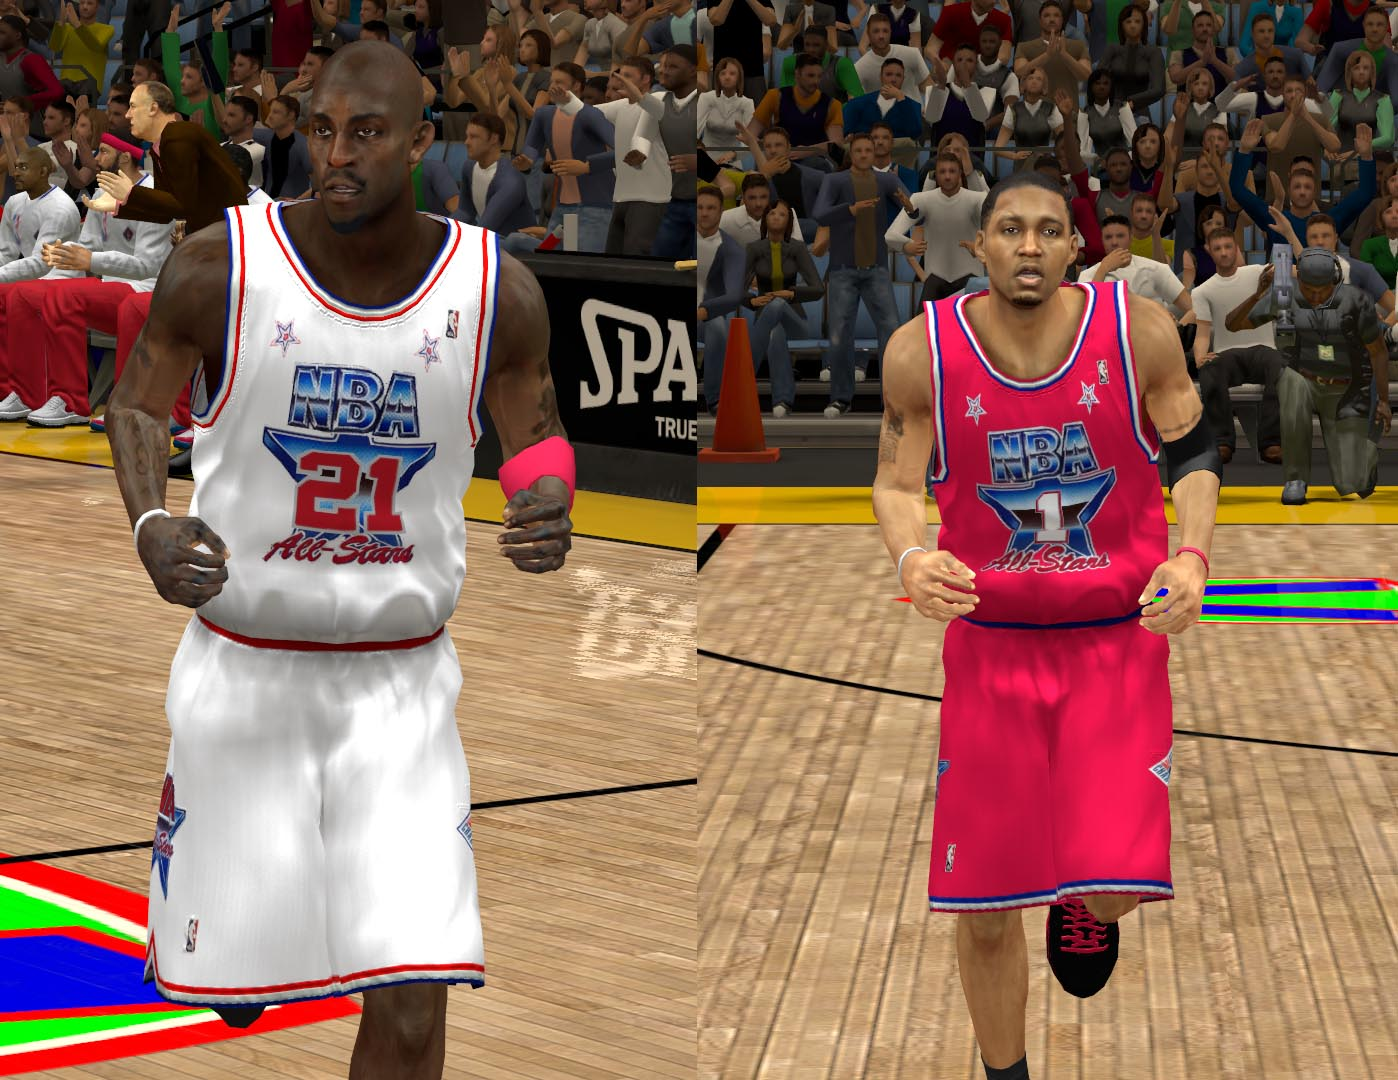 1991 All-Star Jerseys 2K13